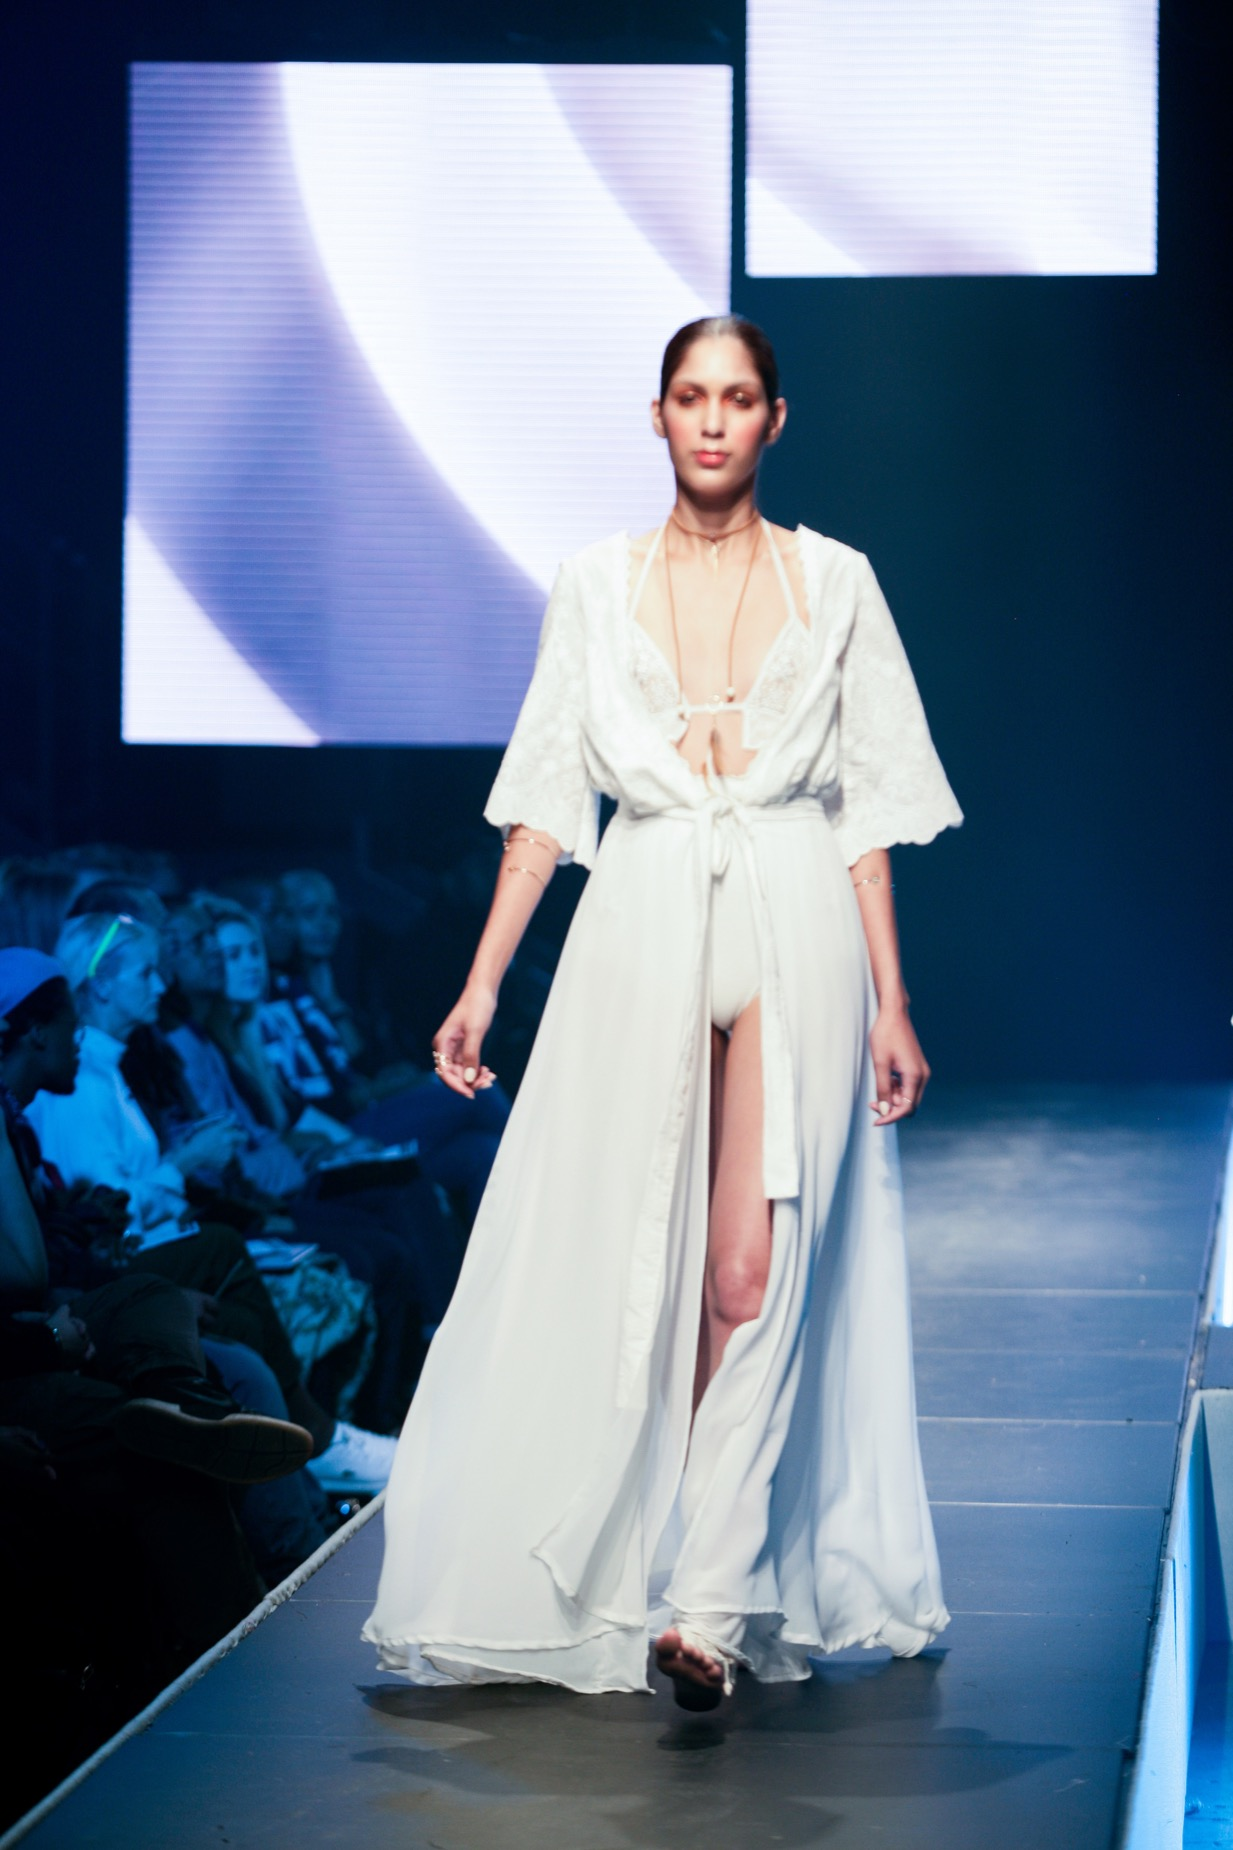 Fashion MA degree course - London postgraduate courses Part time fashion business courses london